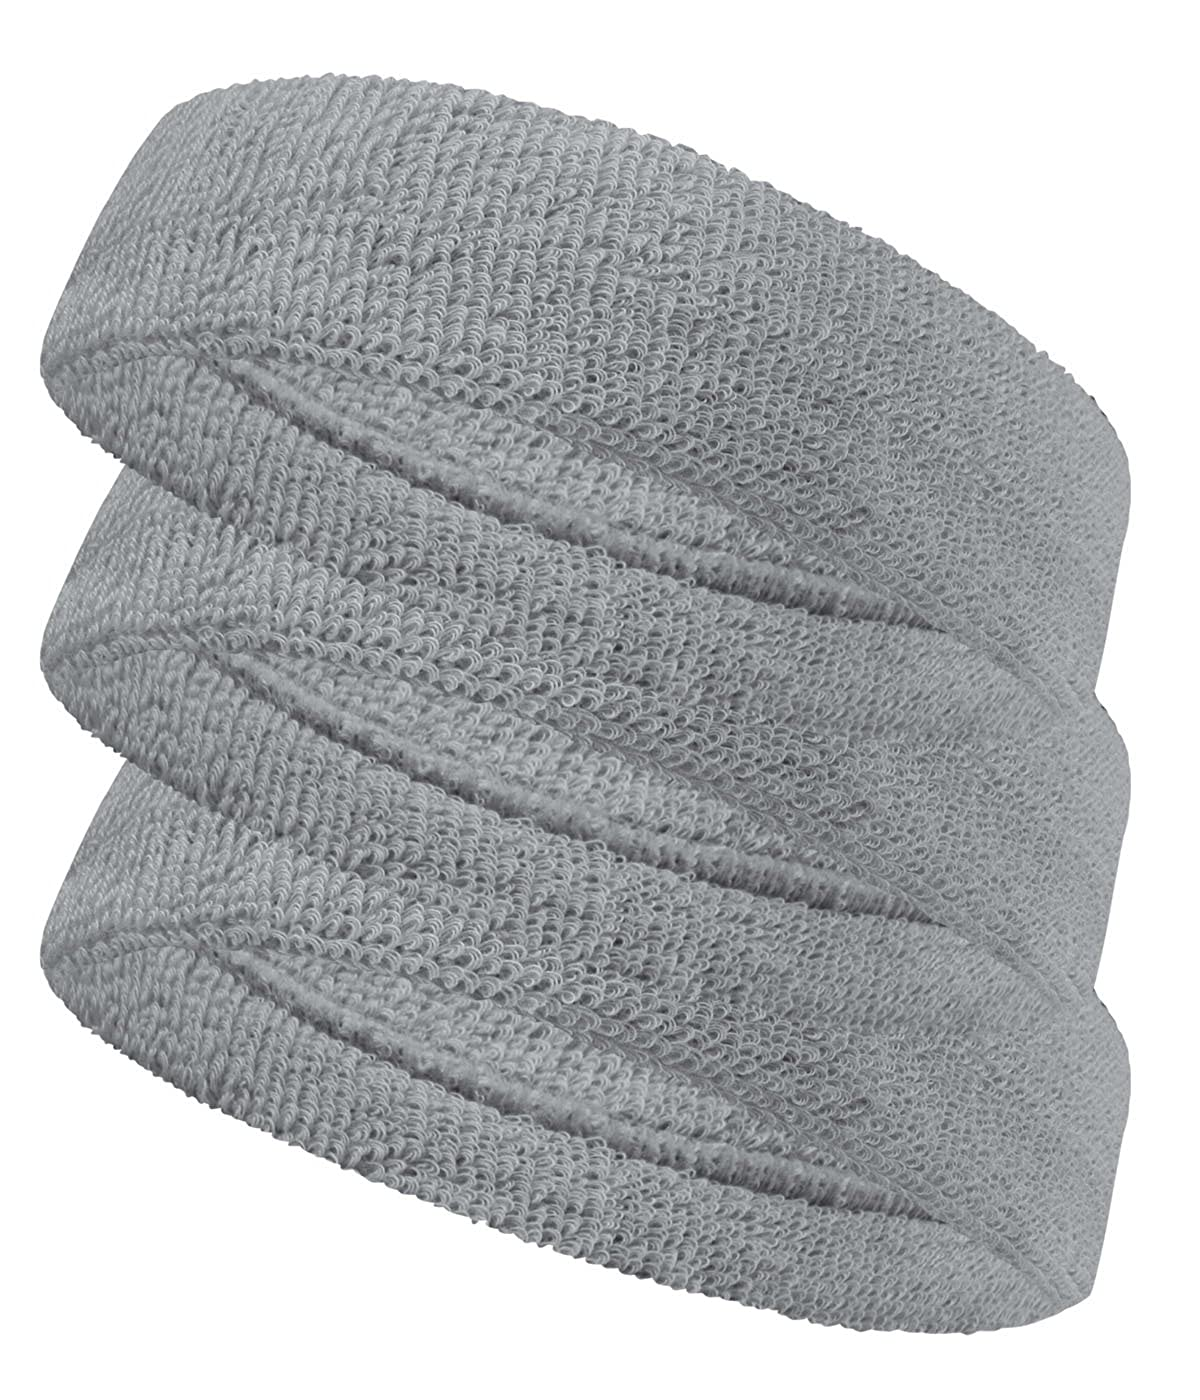 COUVER Stretchable Terry Cloth Headband 3 Piece